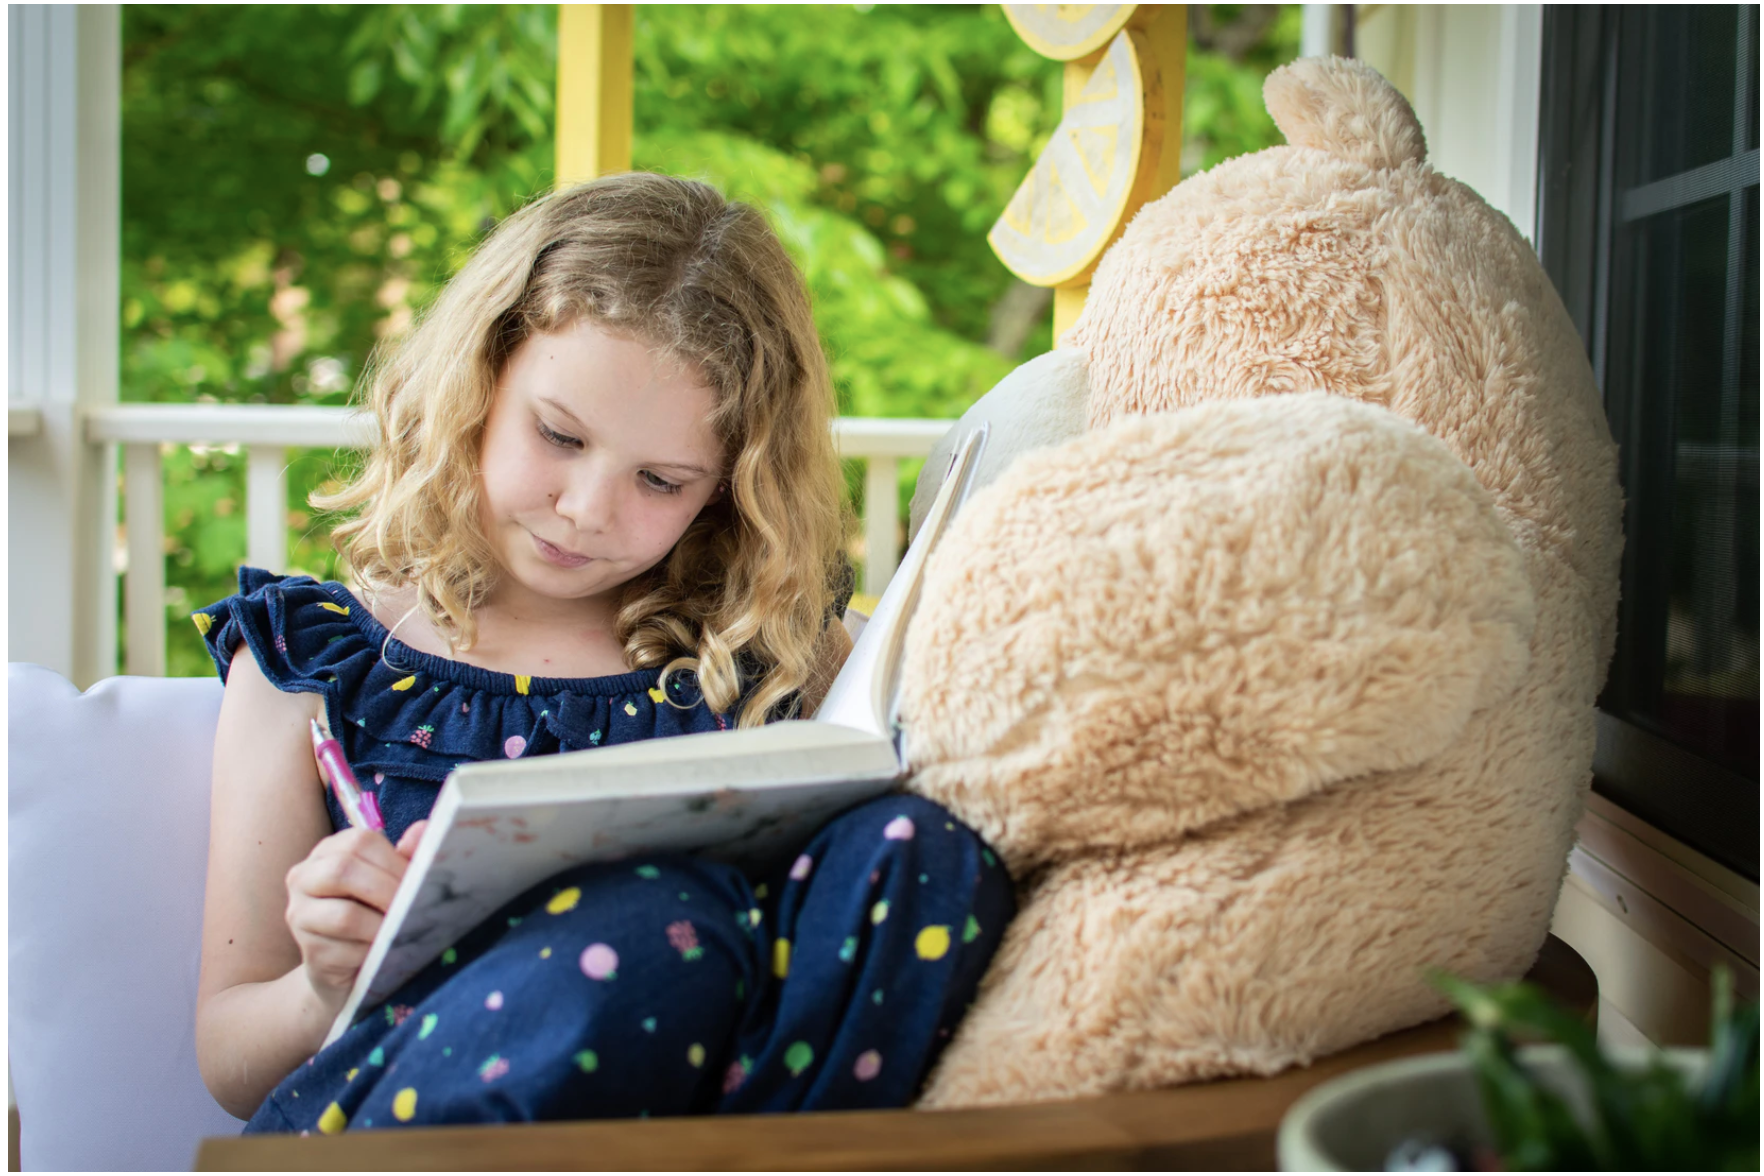 Little girl writing in a journal next to a teddy bear